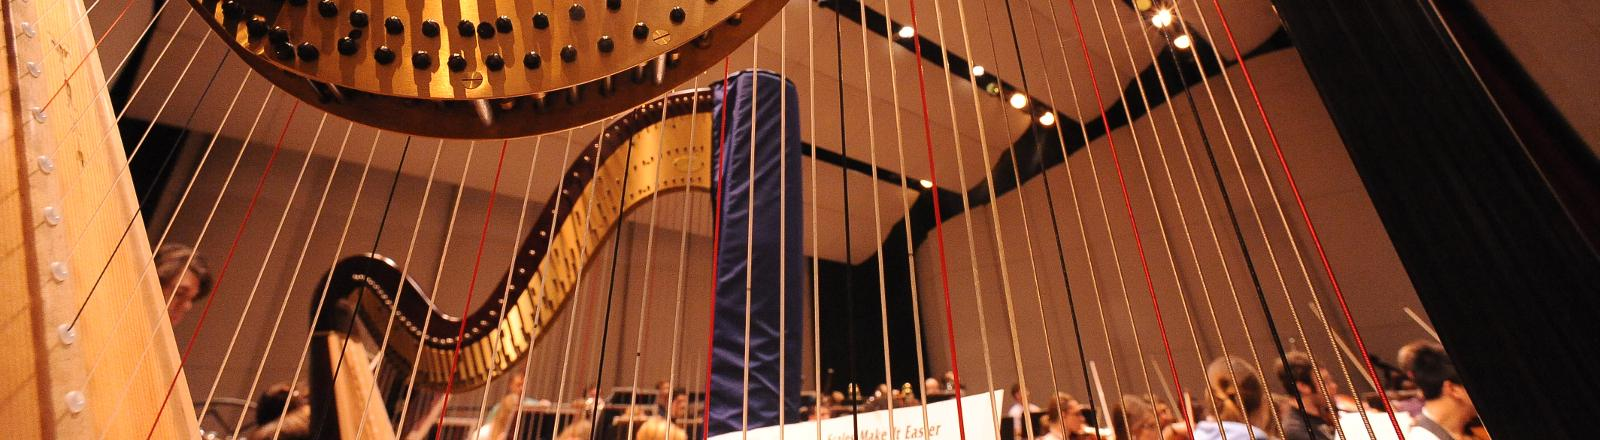 A close up strings of a harp in a concert with loyola students playing in the background